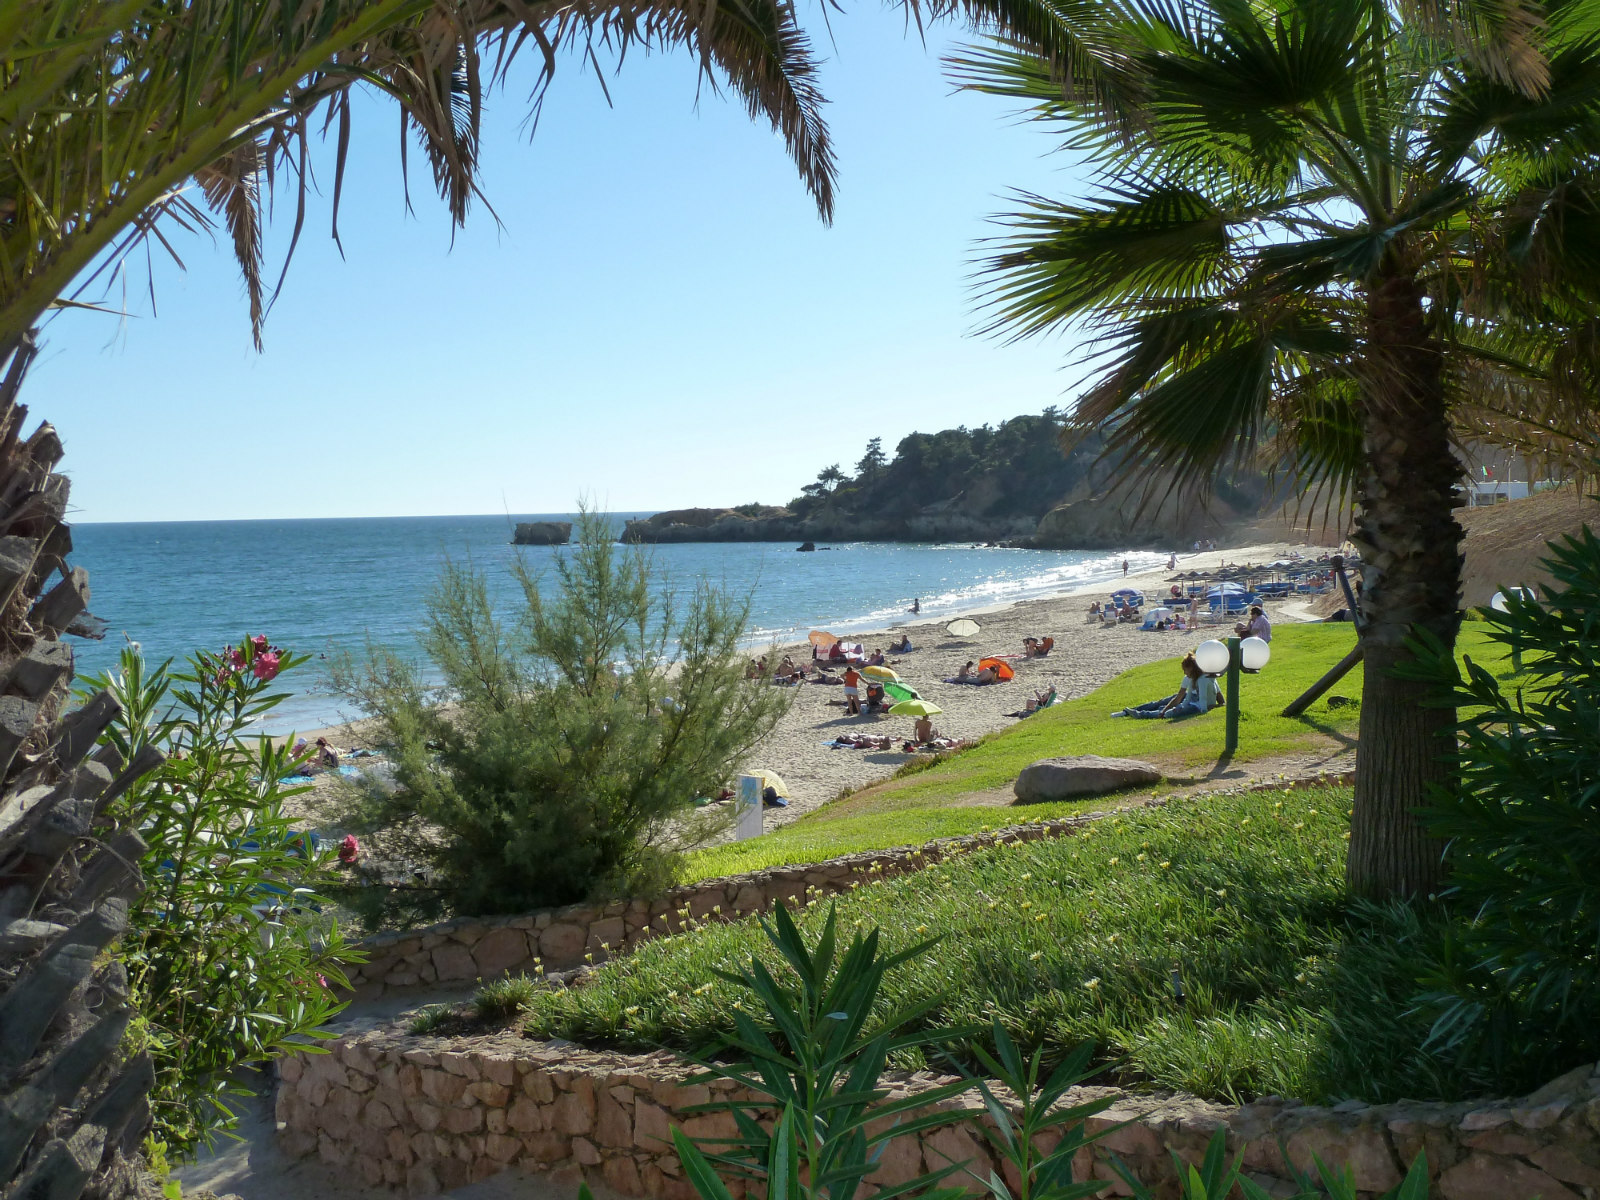 Santa Eulalia. Our local picture postcard Blue Flag beach is only 1.8 kms away.